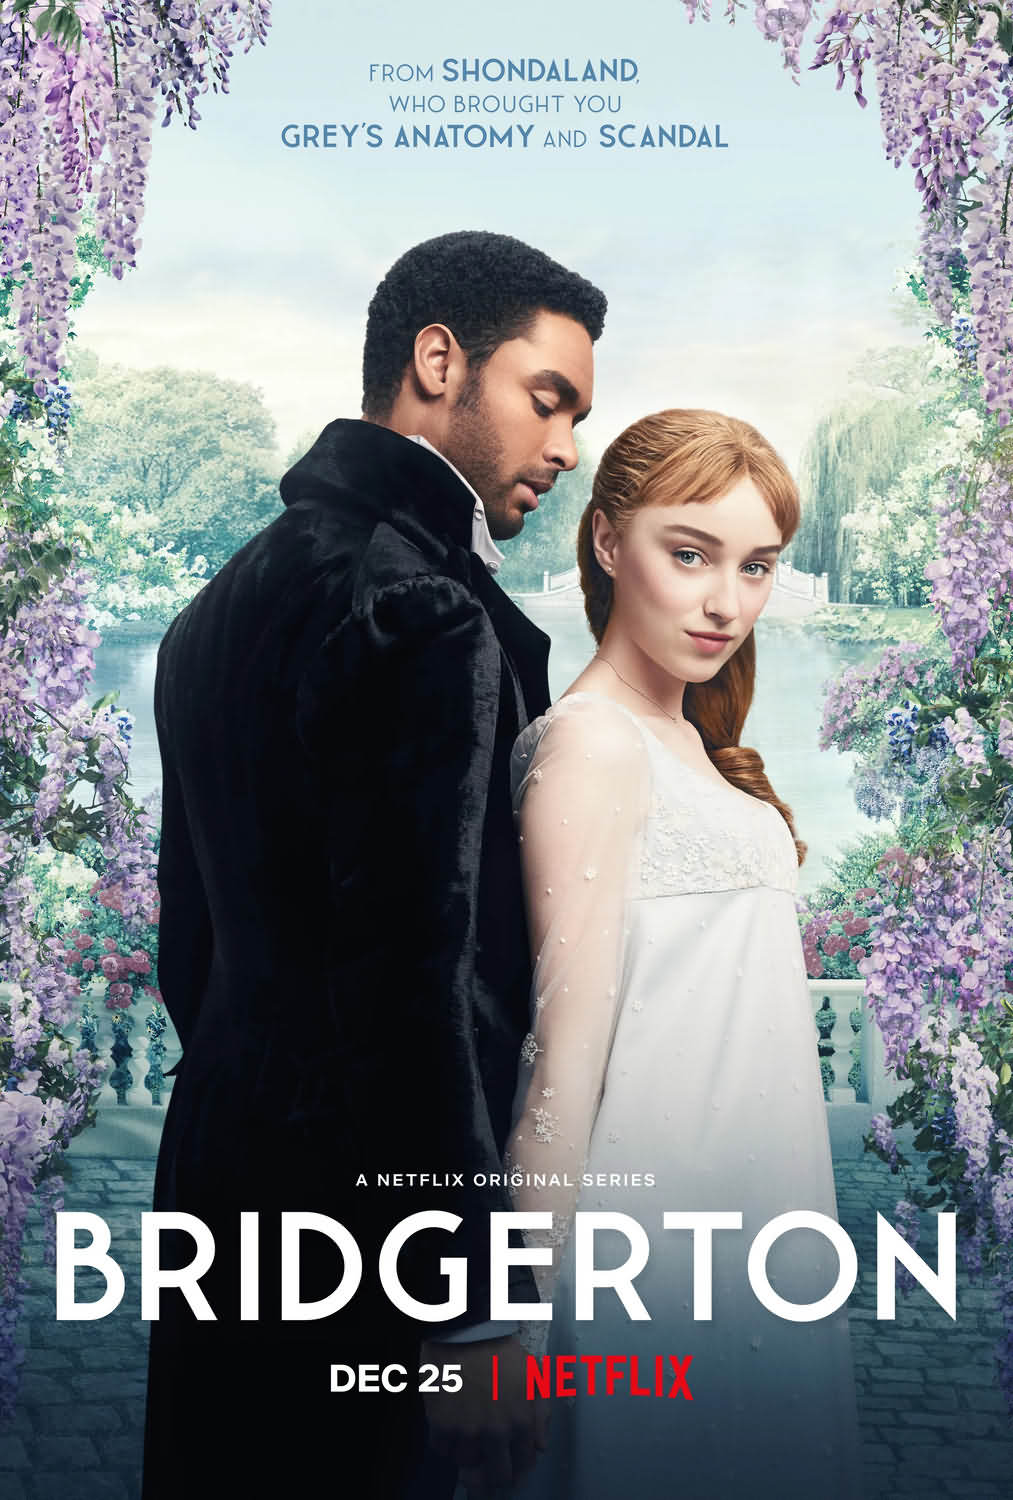 Bridgerton Netflix Movies 2020 Release